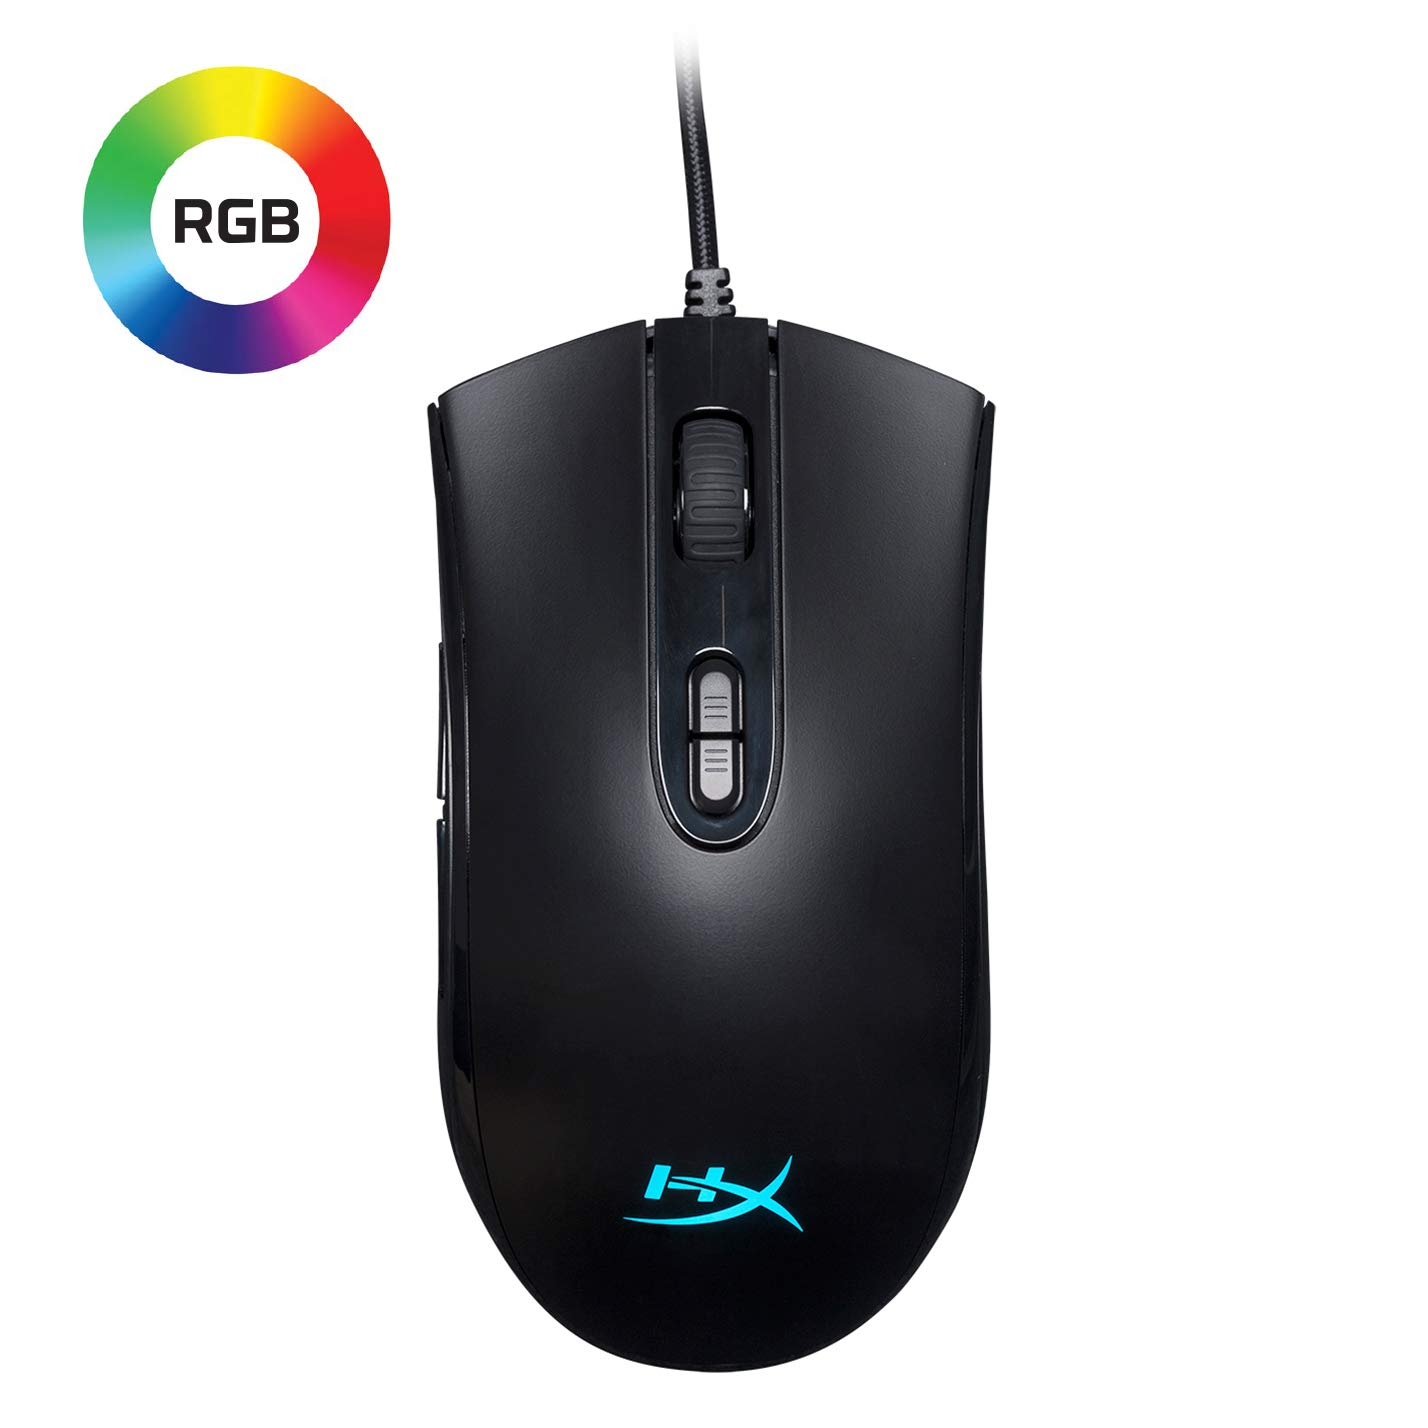 Mouse Gamer : HyperX Pulsefire Core RGB Software Controlled